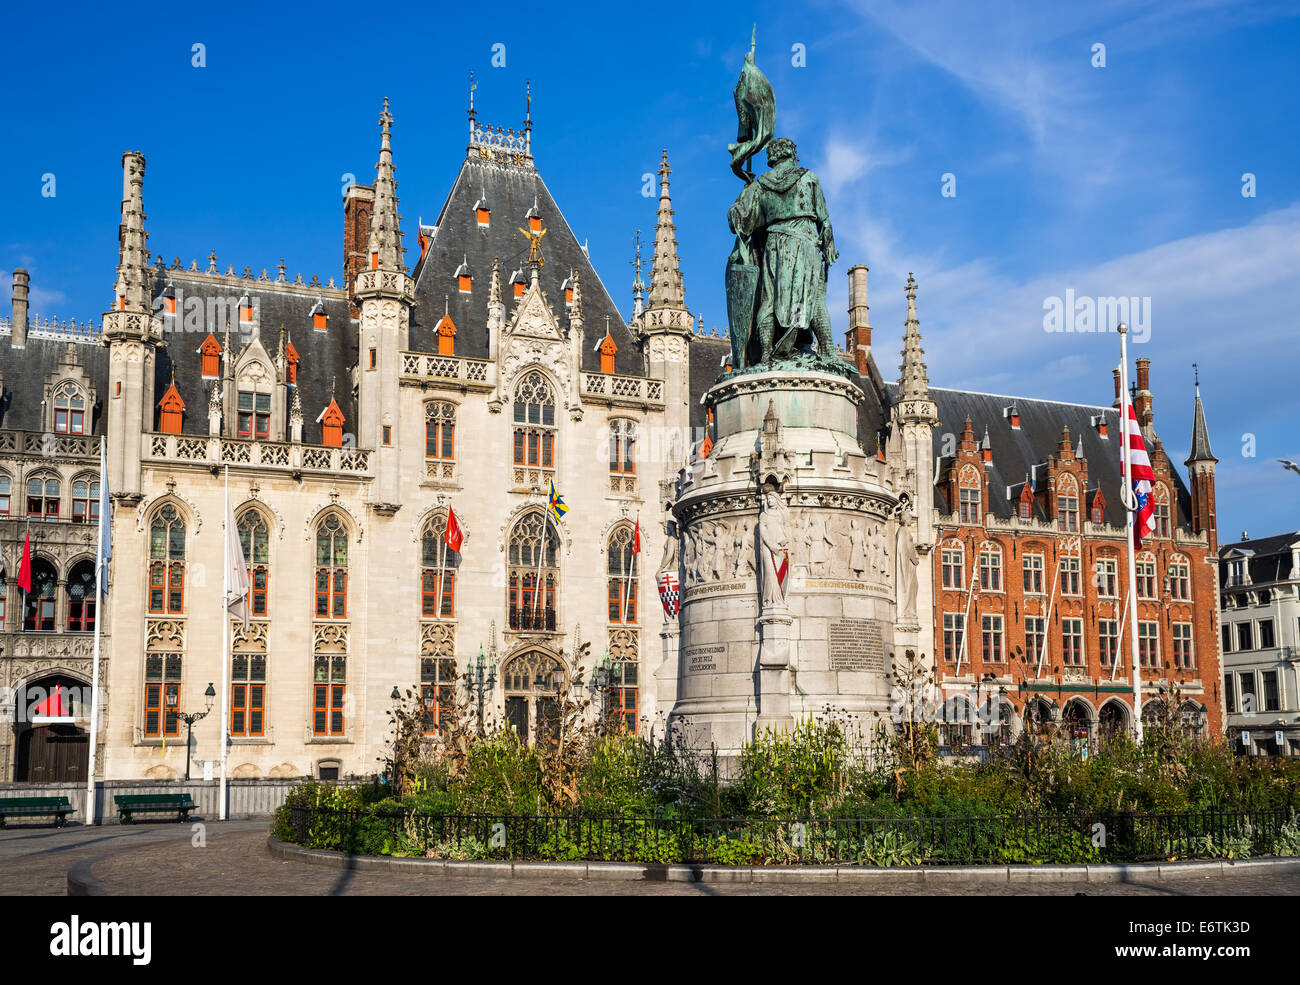 Provinciaal Hof built in 1284 neogothical building on the Grote Markt place in Bruges, Belgium. Stock Photo